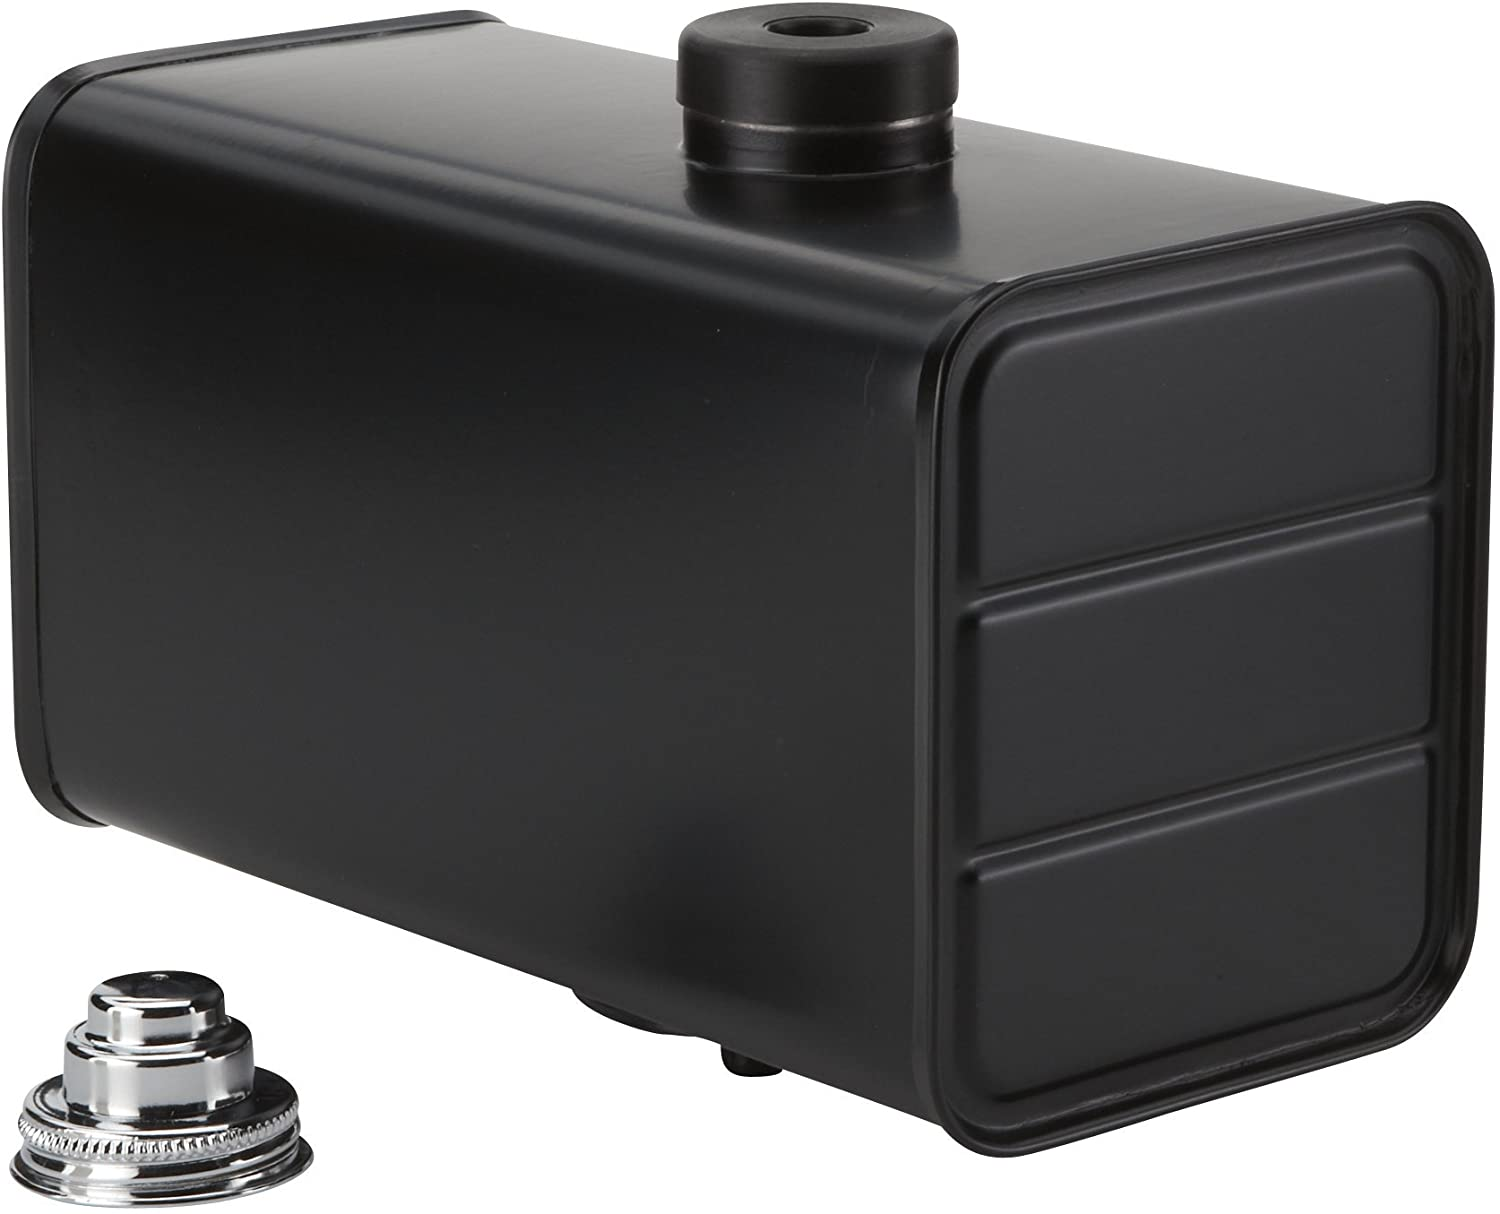 Briggs & Stratton 290816 Metal Fuel Tank and Cap for Remote Mounting: Garden & Outdoor